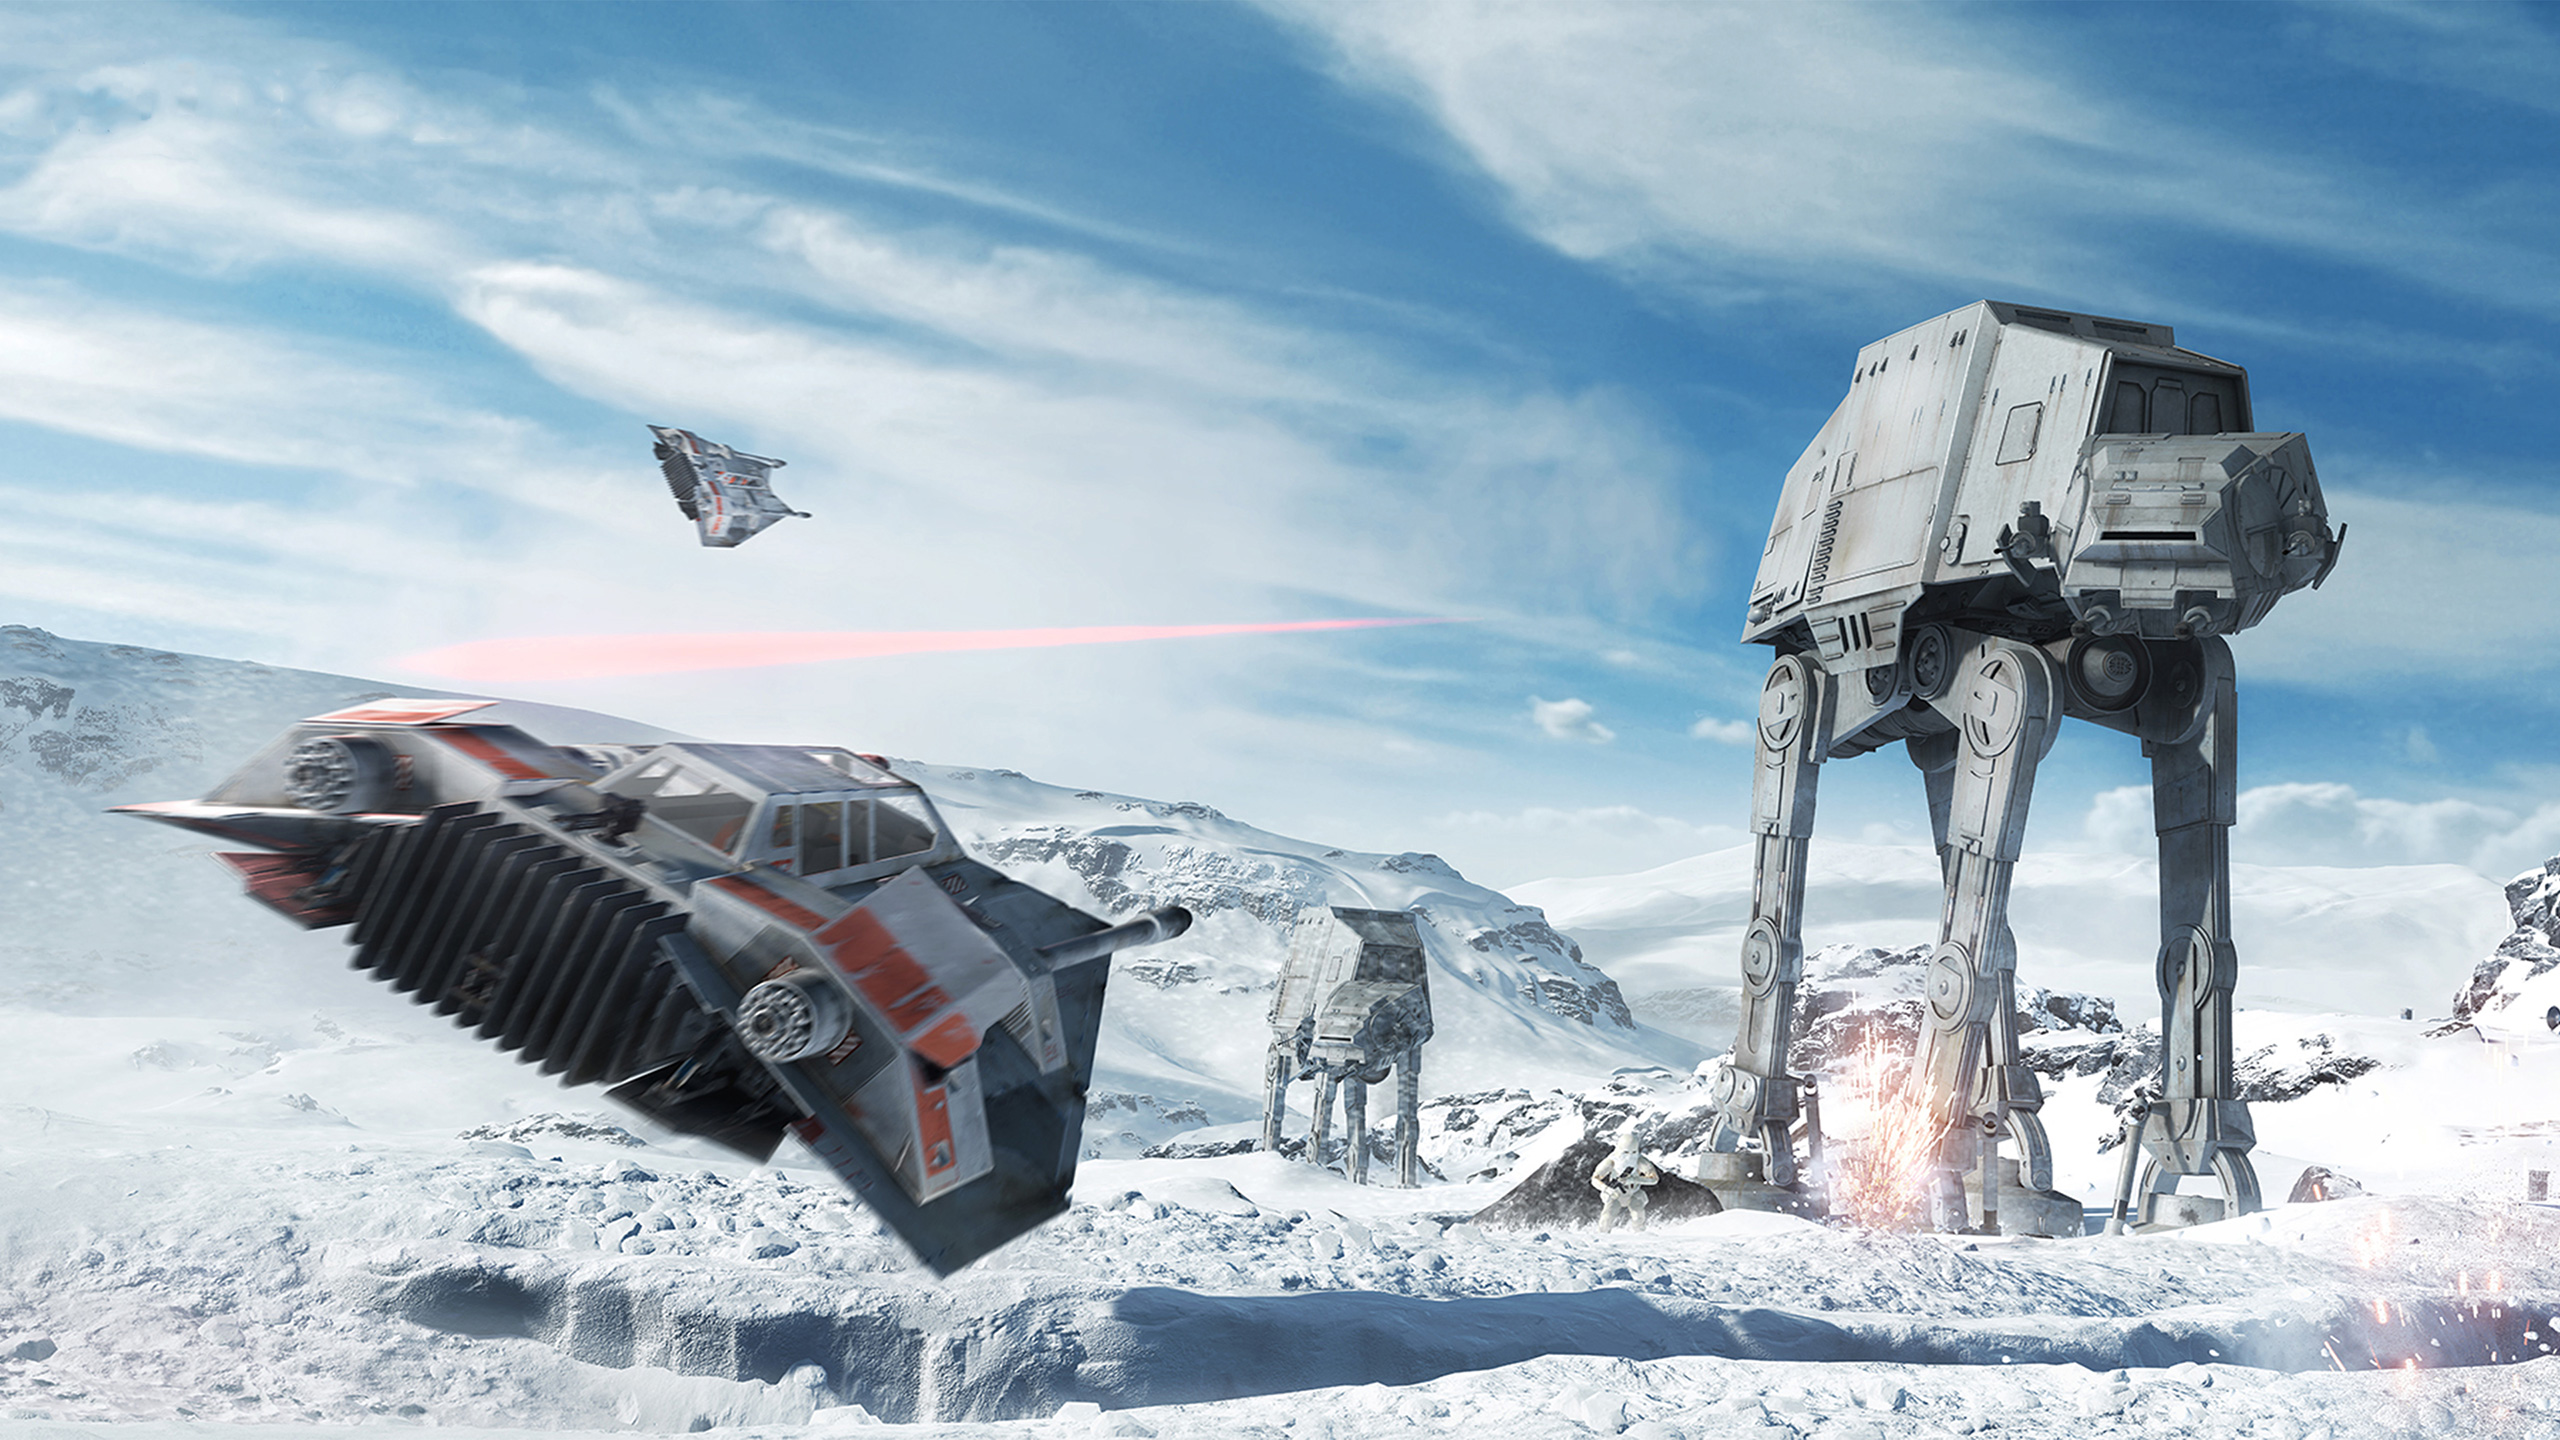 Star Wars Battlefront 4k Hd Wallpaper Star Wars Hoth Battle 2560x1440 Wallpaper Teahub Io